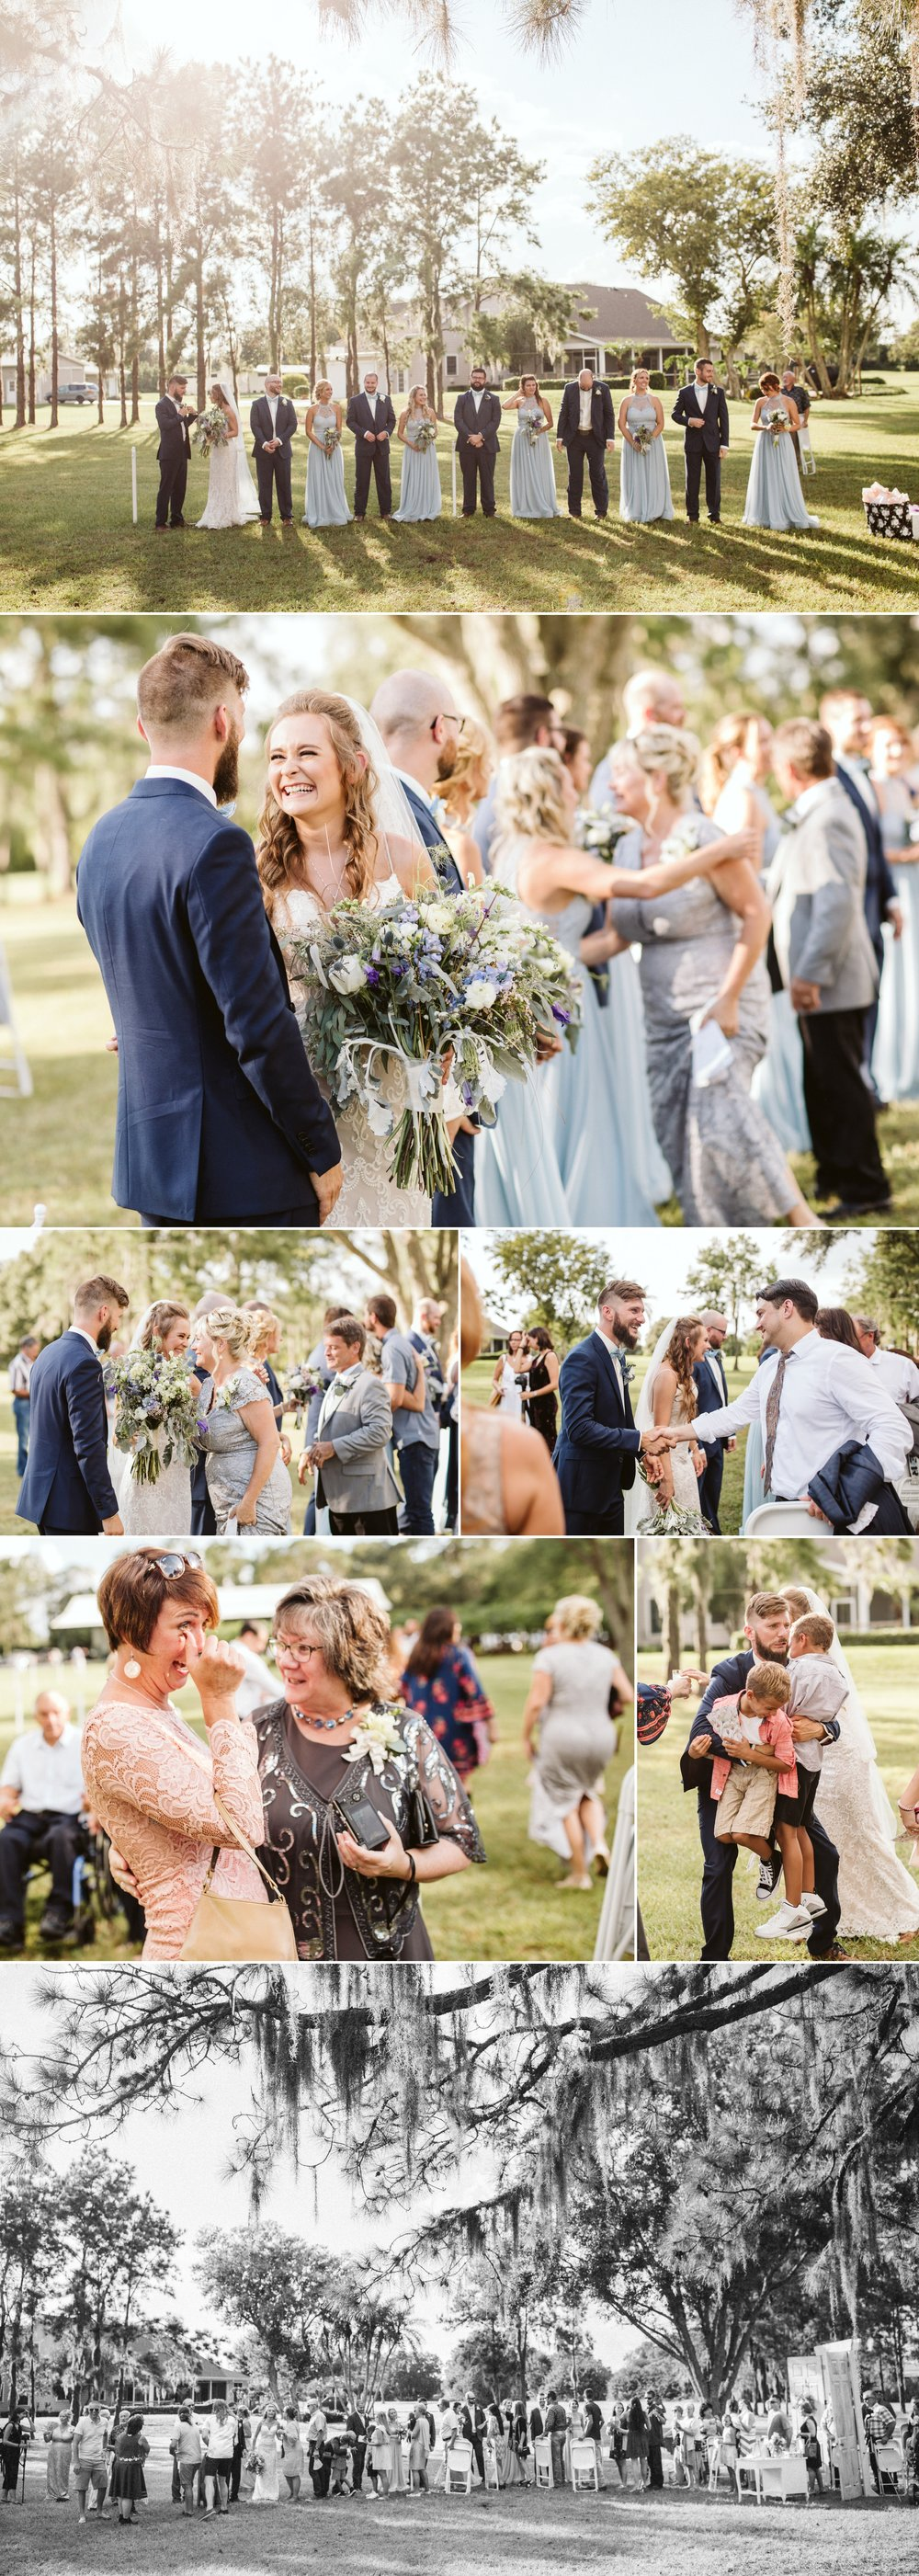 Romantic Floral Outdoor Field Chapel Wedding- Sarasota Florida- Courtney & Isaac19.jpg